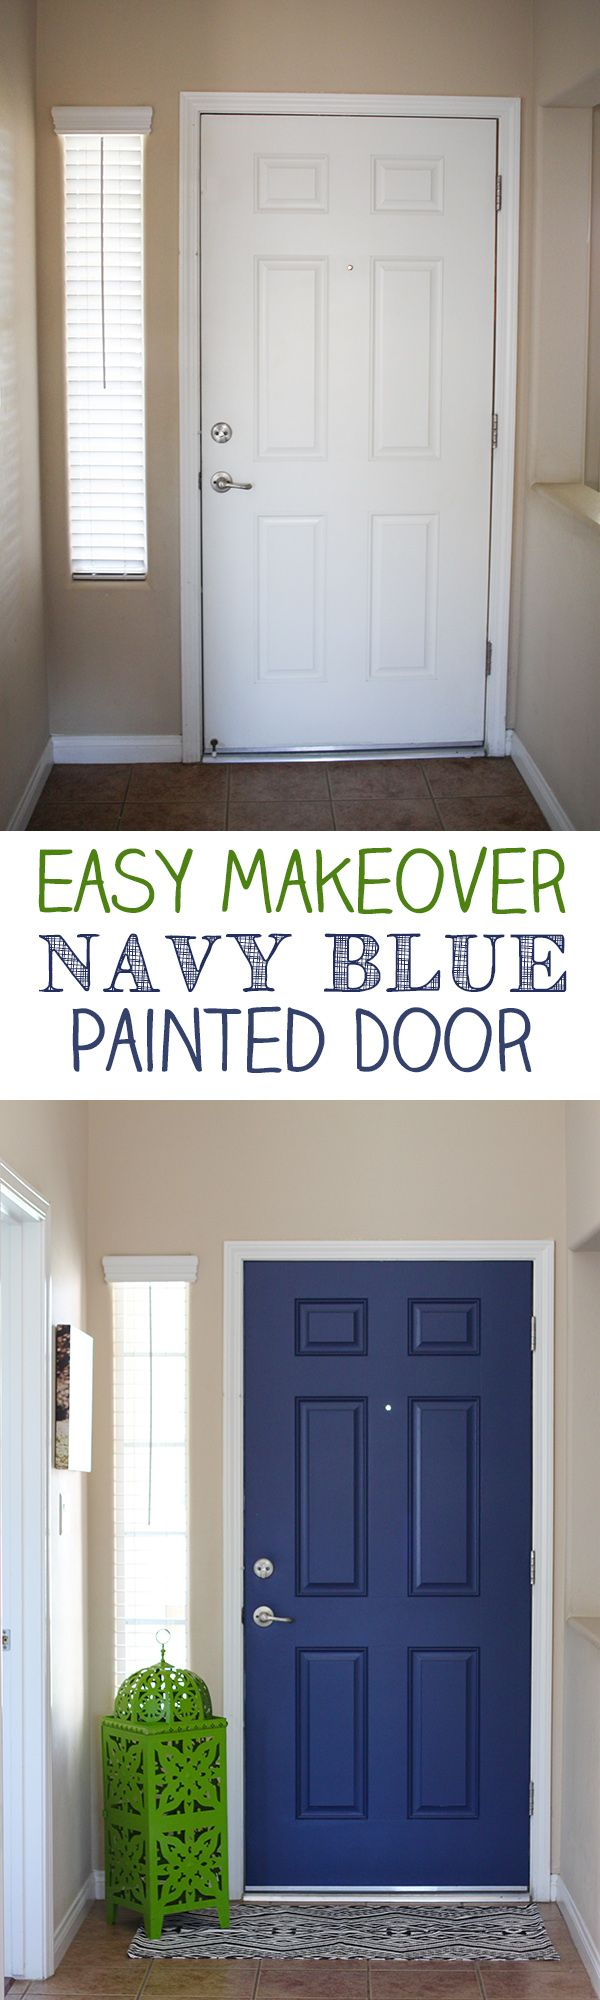 25 Best Ideas About Paint Doors On Pinterest Rust